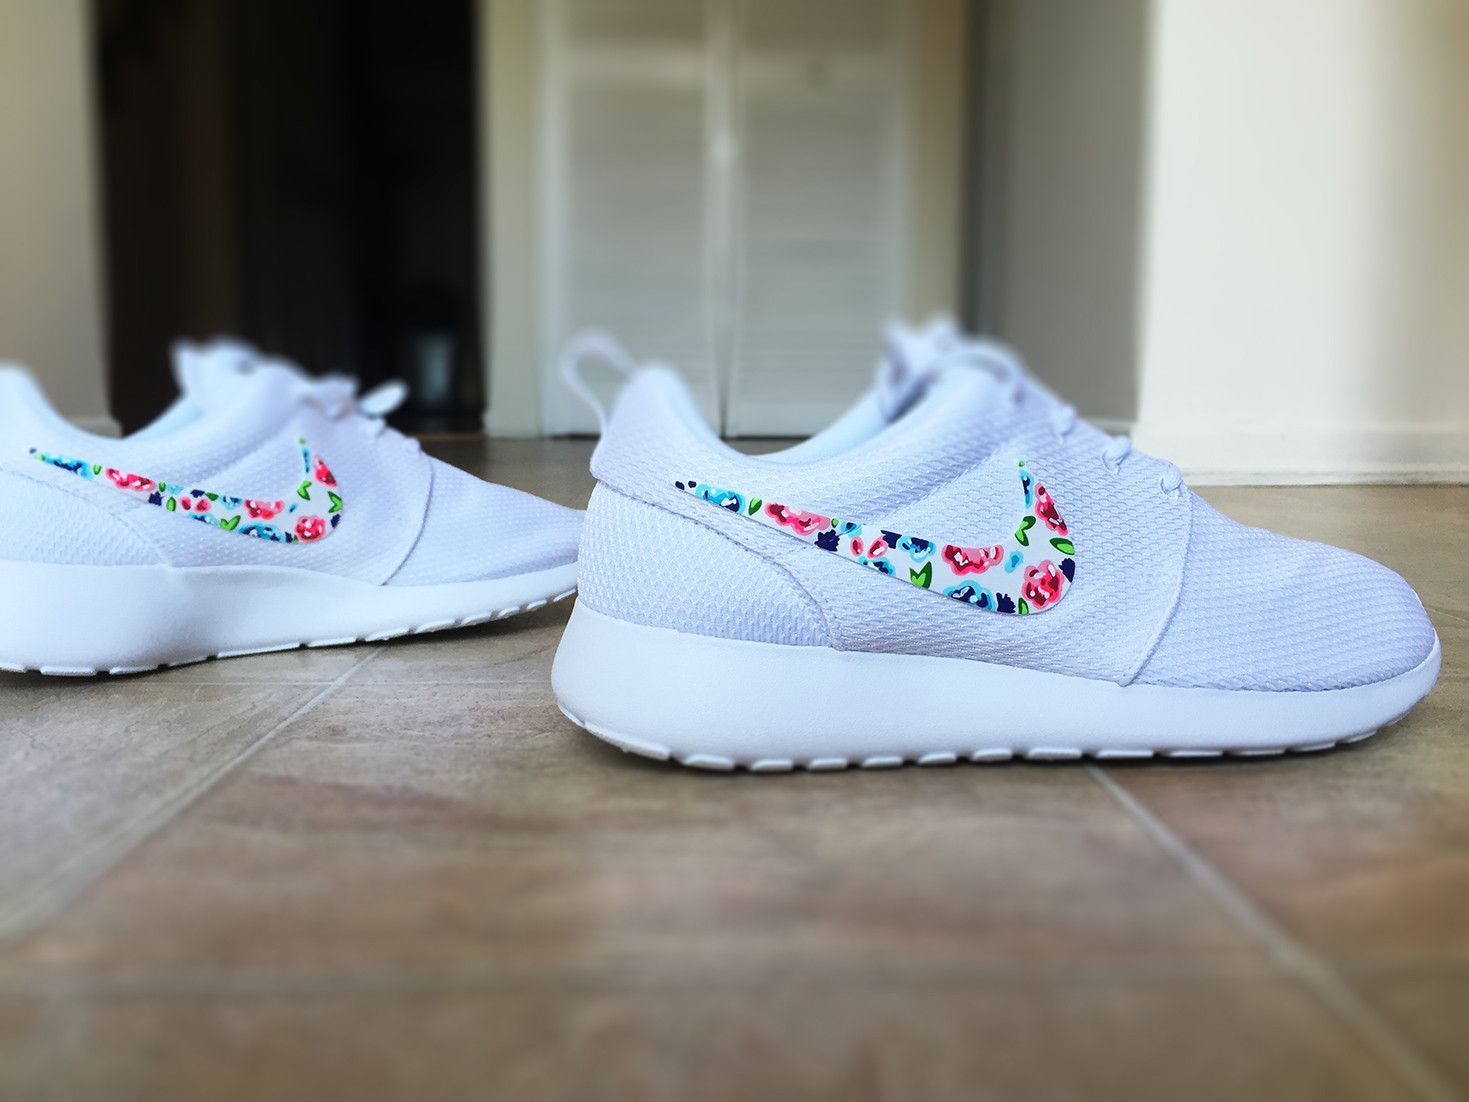 promo code bf18e dab5f Womens Custom Nike Roshe Run Floral design, Custom Floral Nike, white with  pop of color, cute and trendy